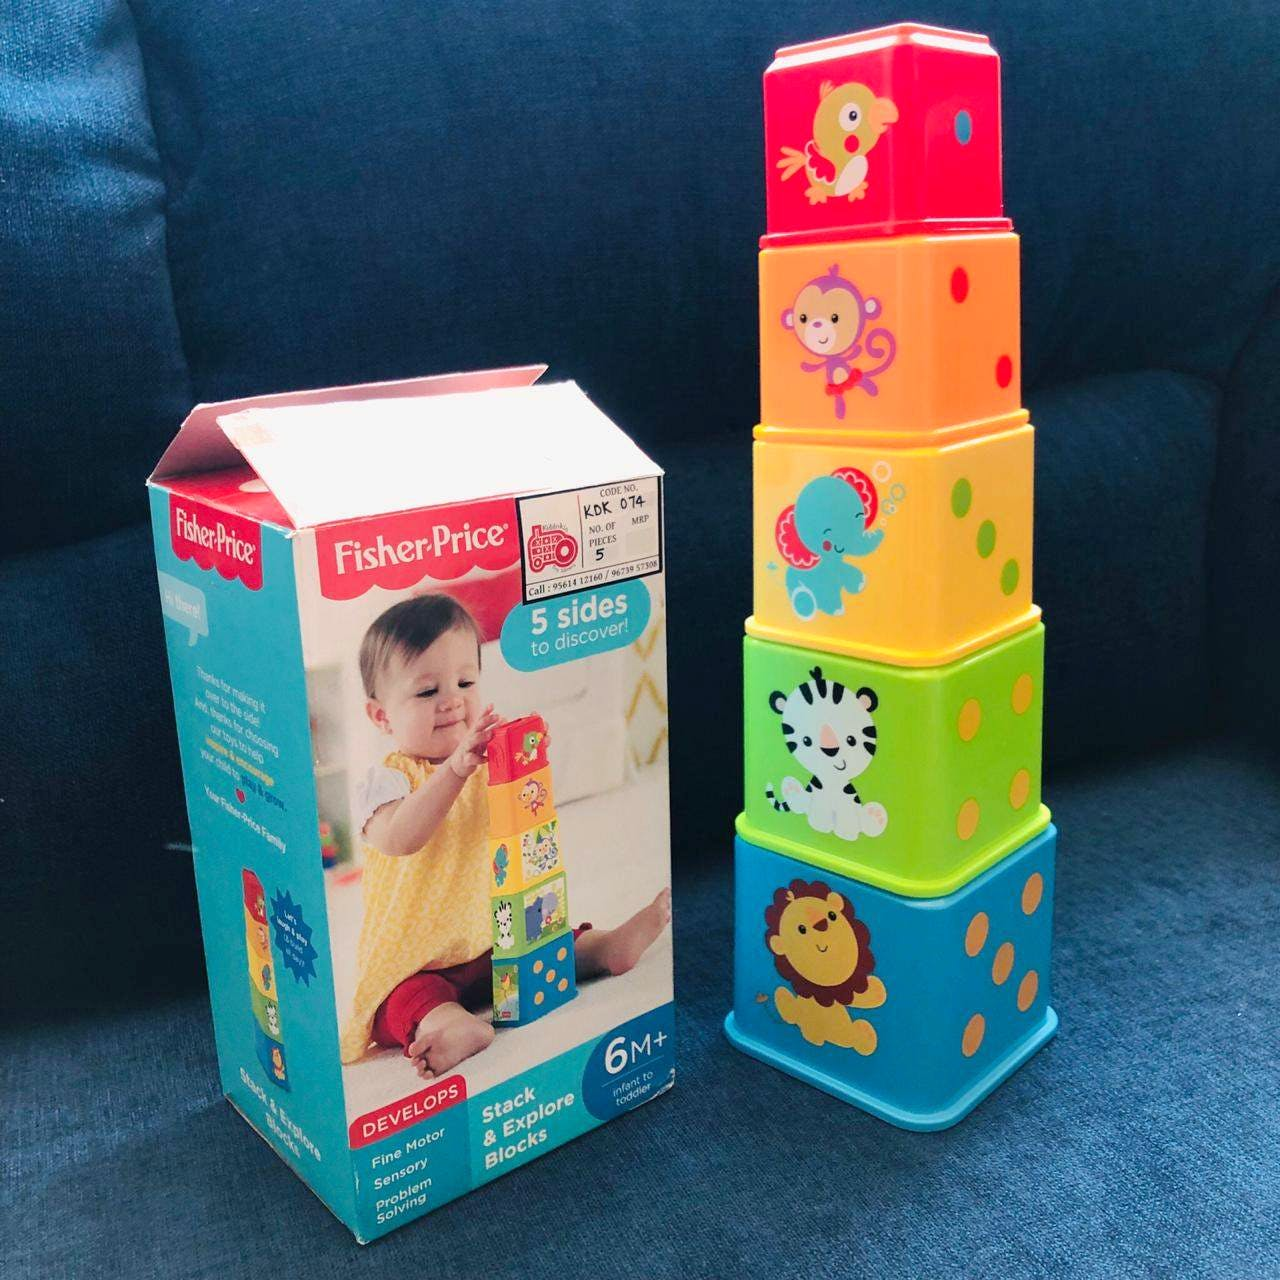 Toy,Product,Toy block,Play,Child,Plastic,Cardboard,Educational toy,Wooden block,Box